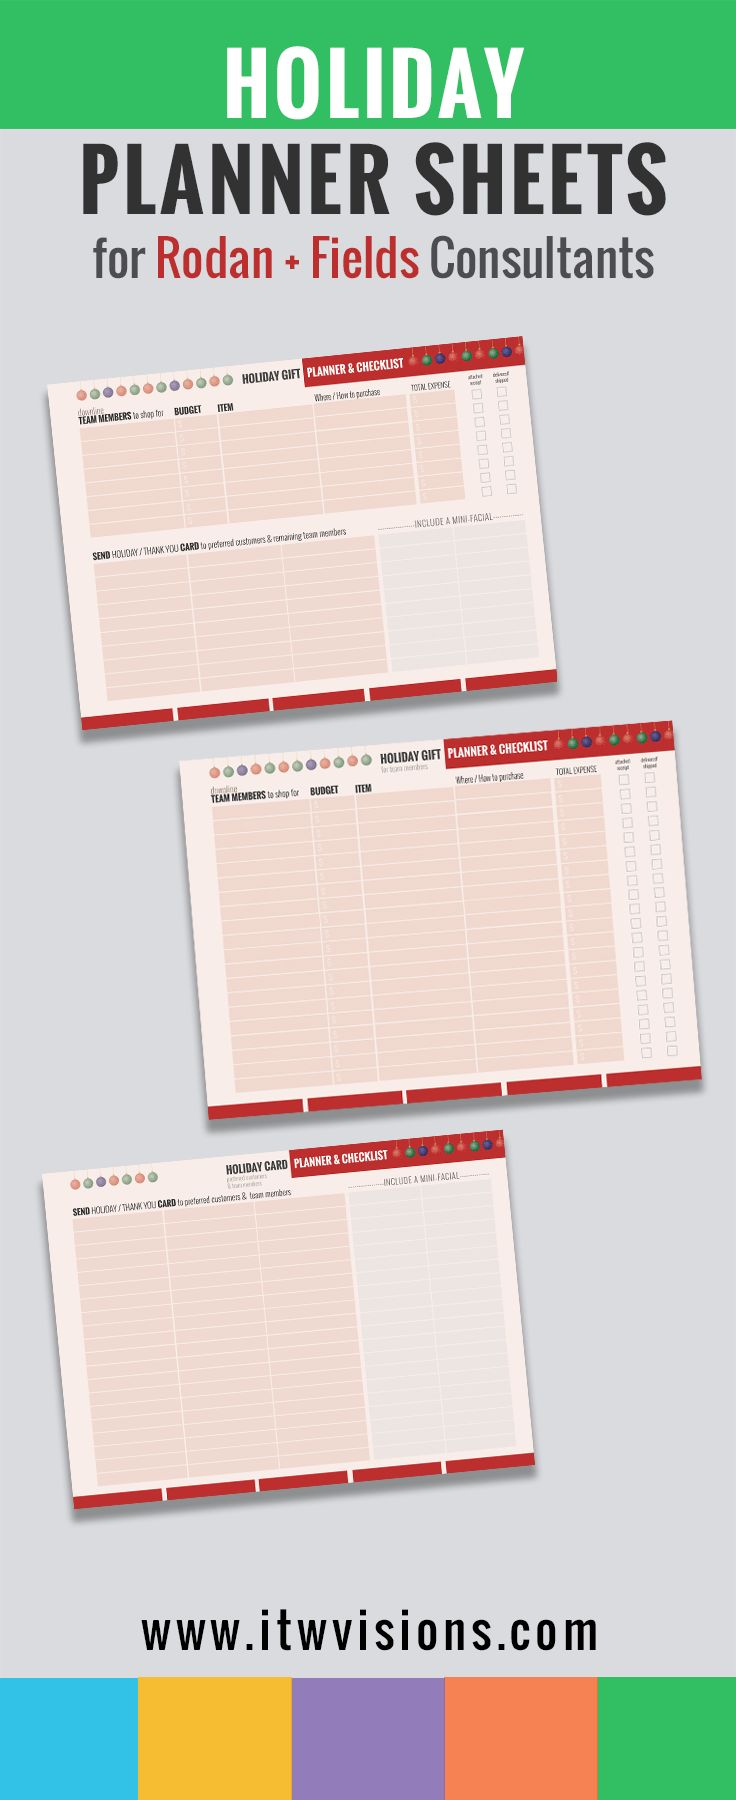 HOLIDAY Planner sheets, instant download, printable , digital download printables are a great way to keep organized while not forgetting about those you'd like to send gifts to; those team members who have helped you grow your business. track and record gifts for team members, checklist to attach receipts. Planning sheets. Holiday. Rodan and fields. Track who to send holiday cards to and when to include a mini facial. Kindly visit itwvisions.com to get a closer look.